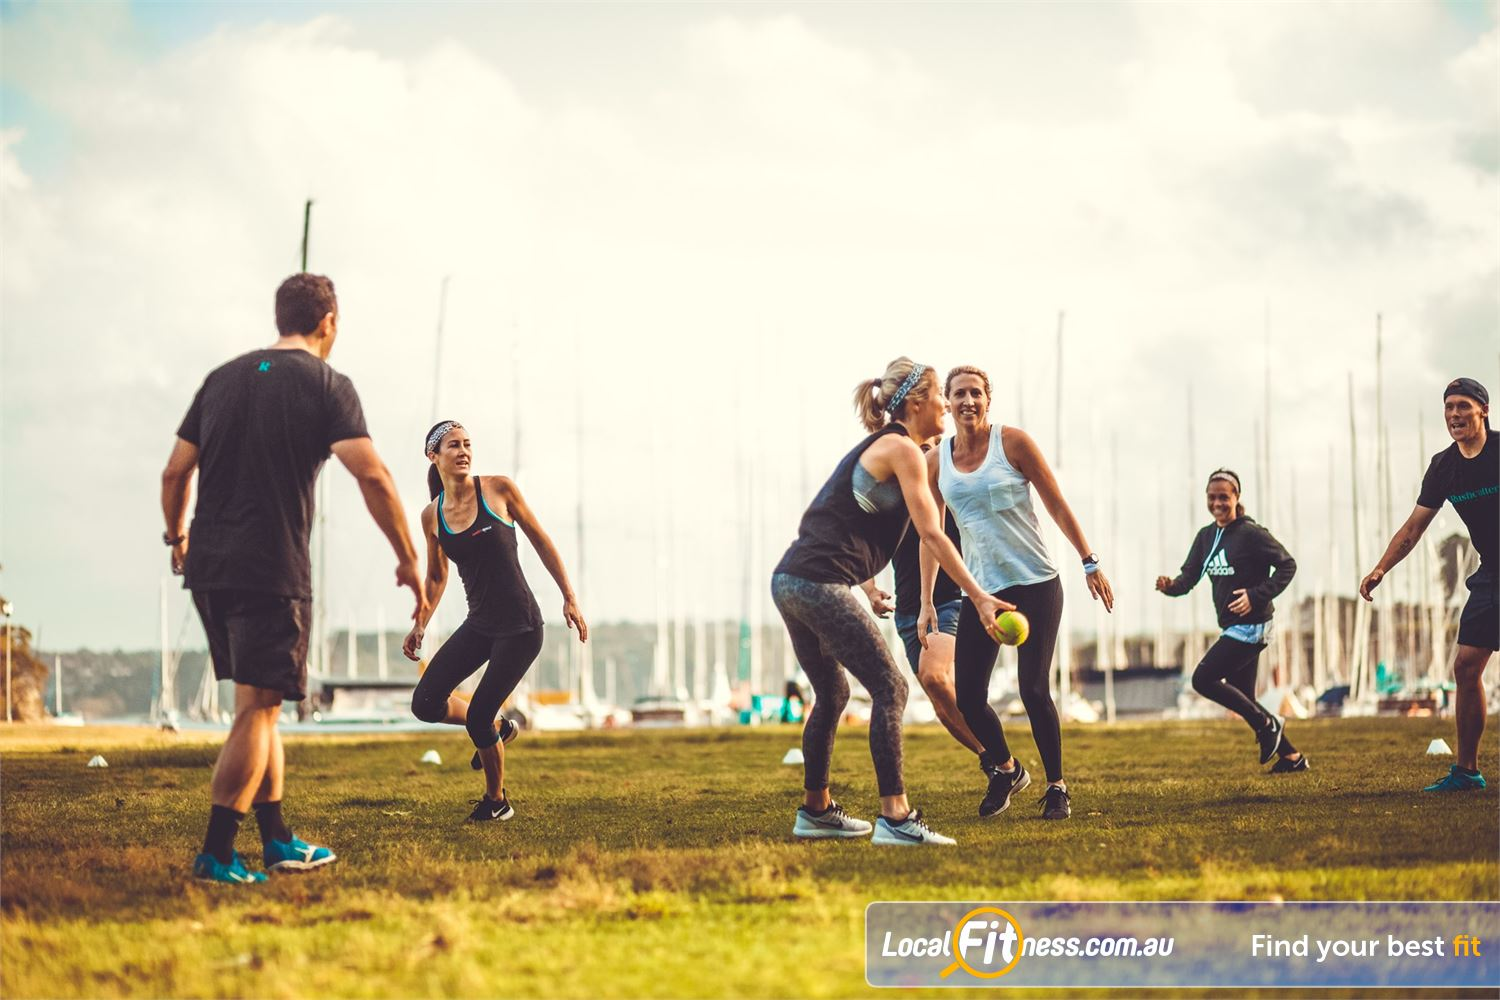 Rushcutters Health Rushcutters Bay Experience outdoor classes in the beautiful Rushcutters Bay park.